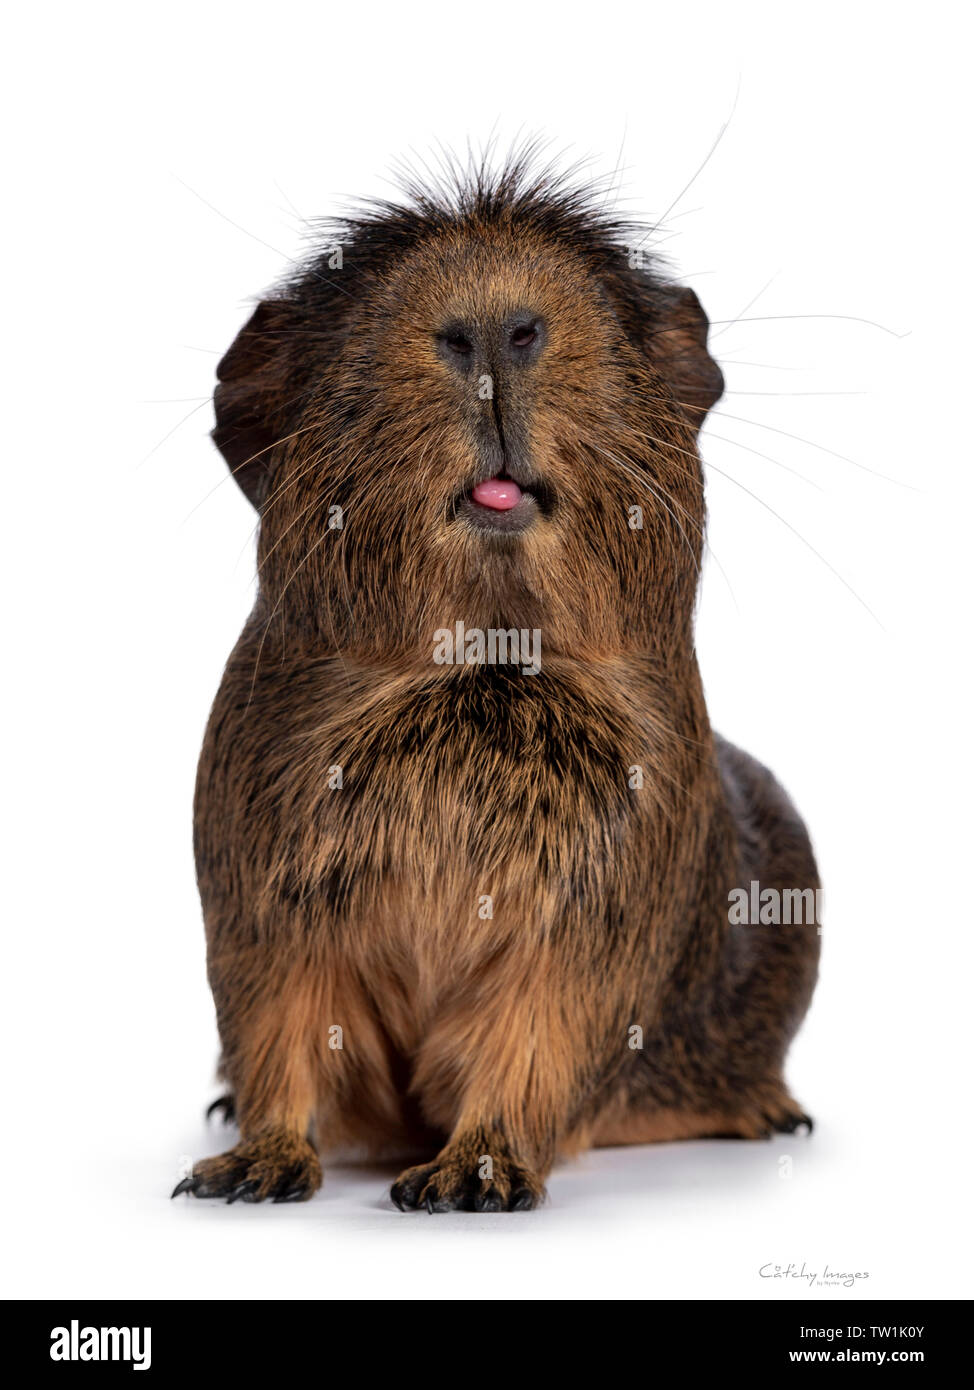 Cute crested cavy, standing facing front. Haed up, sticking out tongue. Isolated on white background. - Stock Image